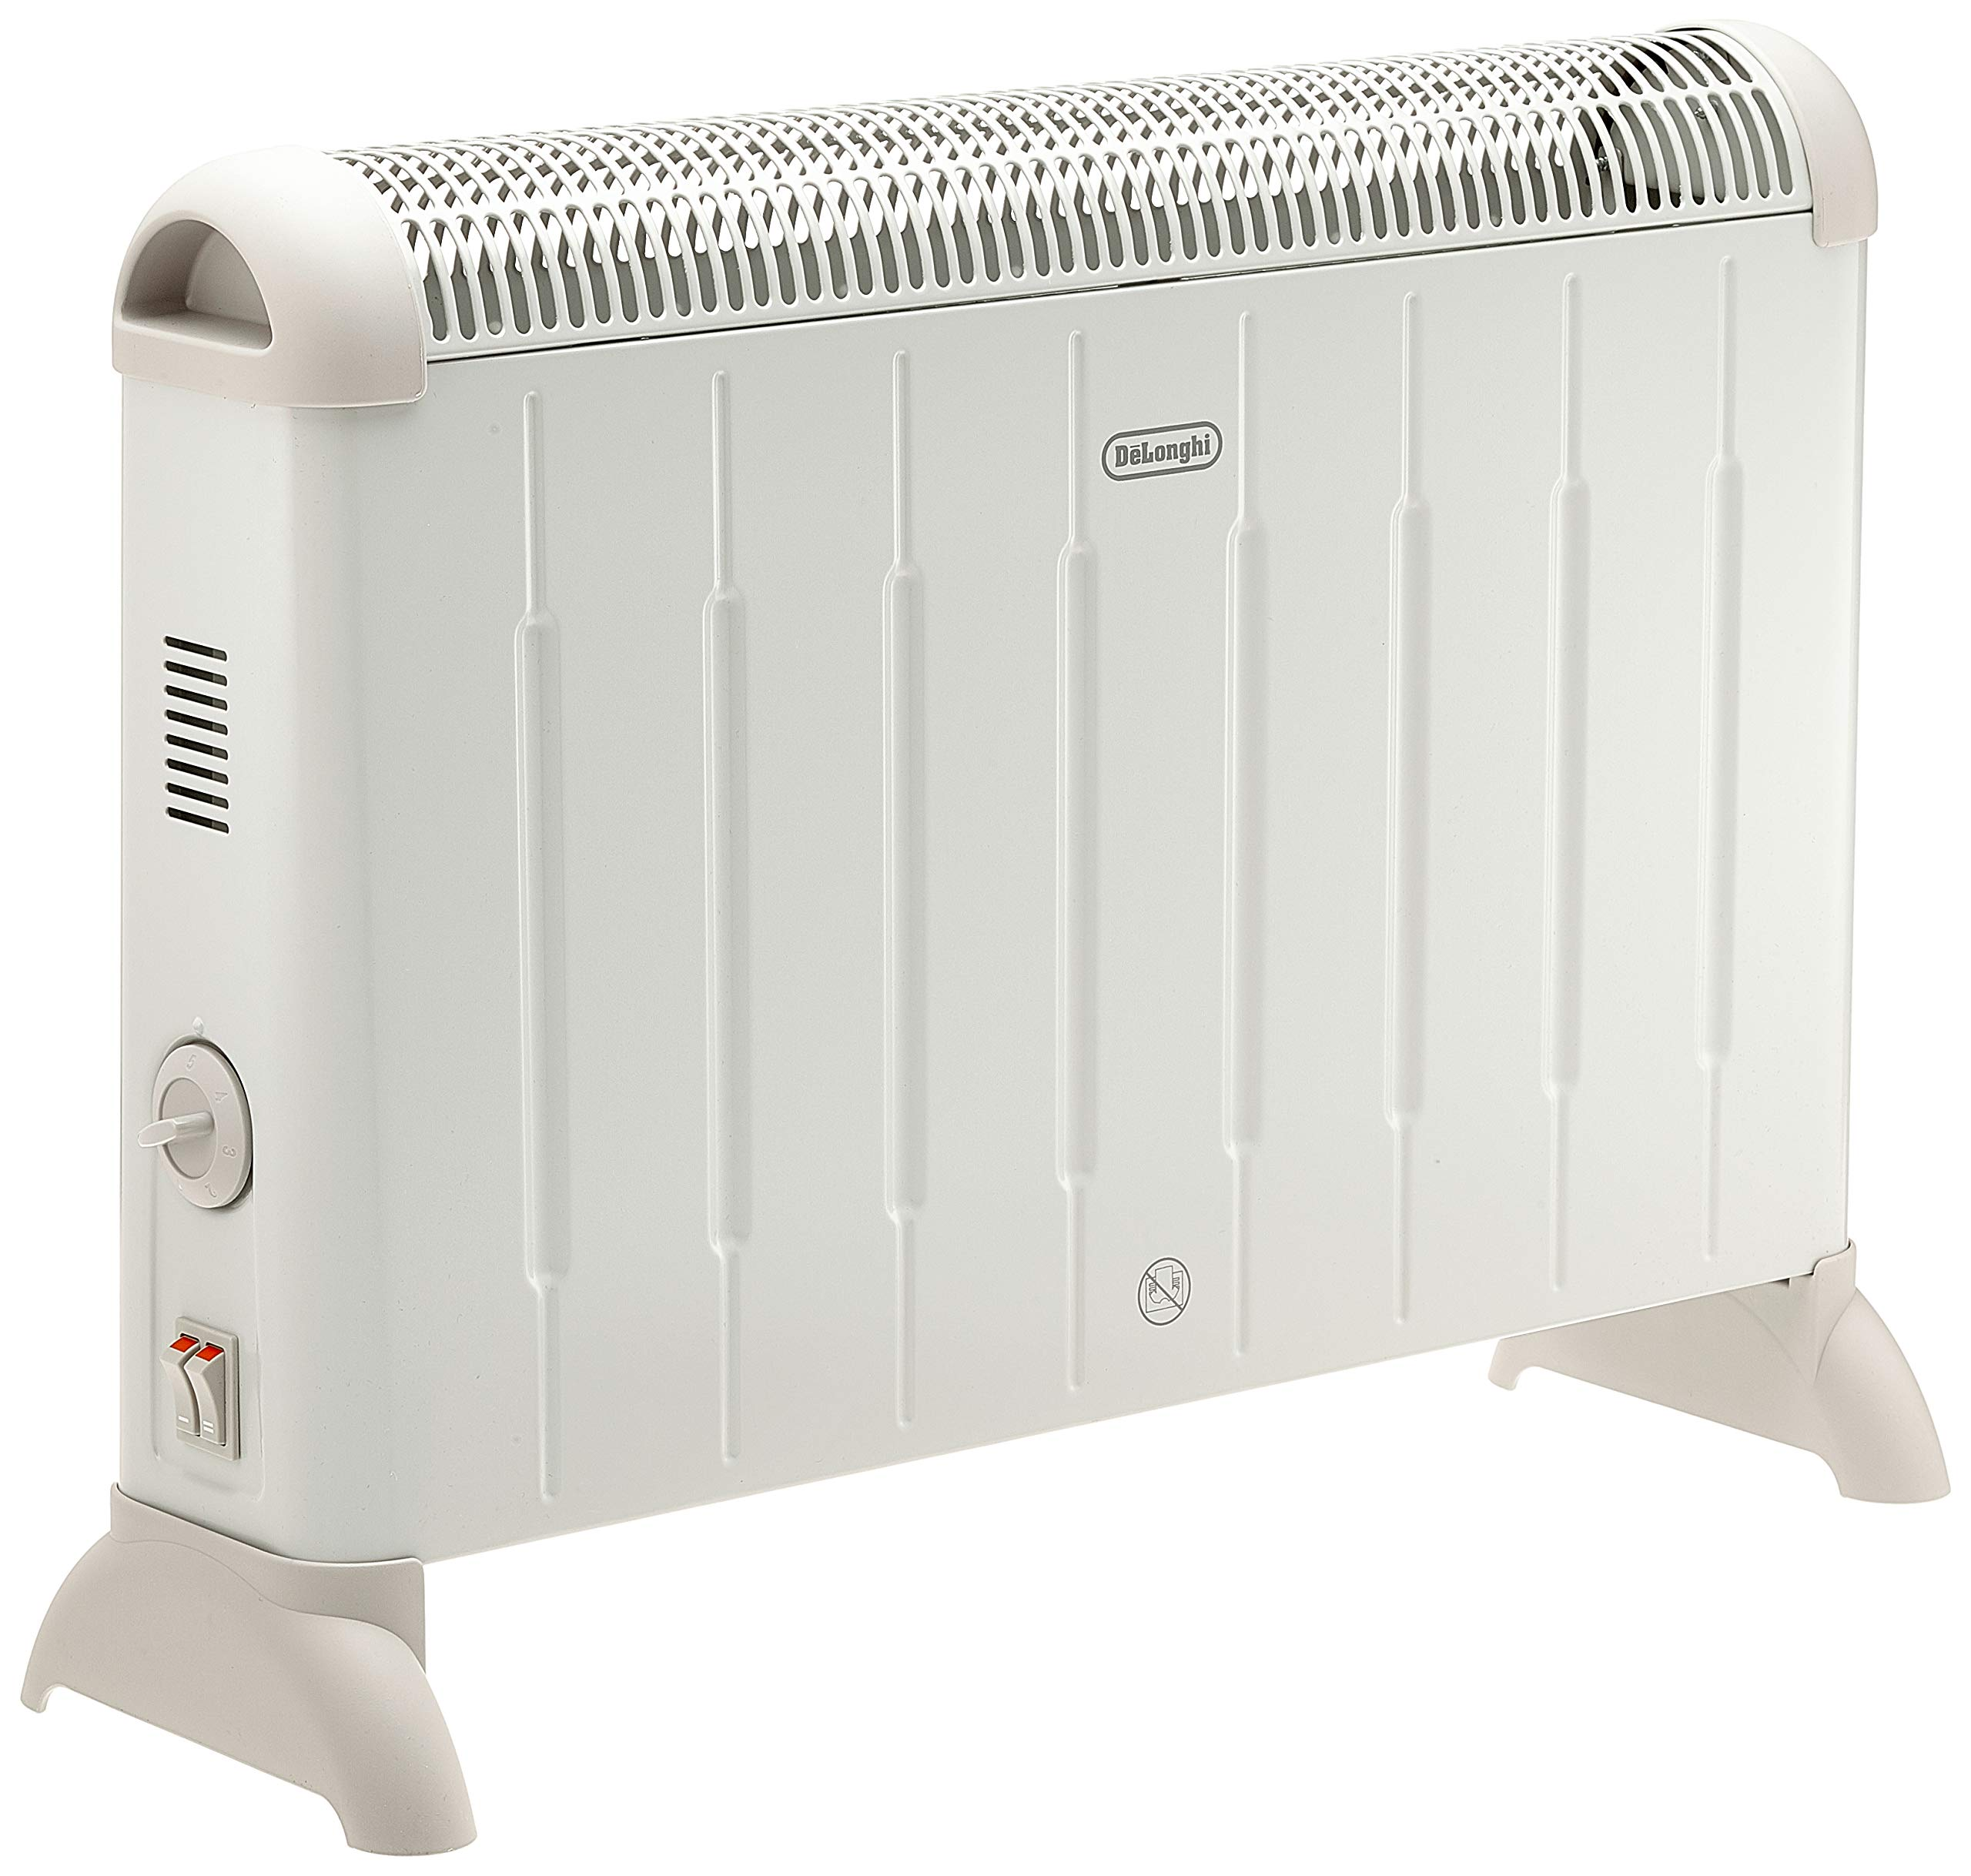 Delonghi Convector Heater for sale in